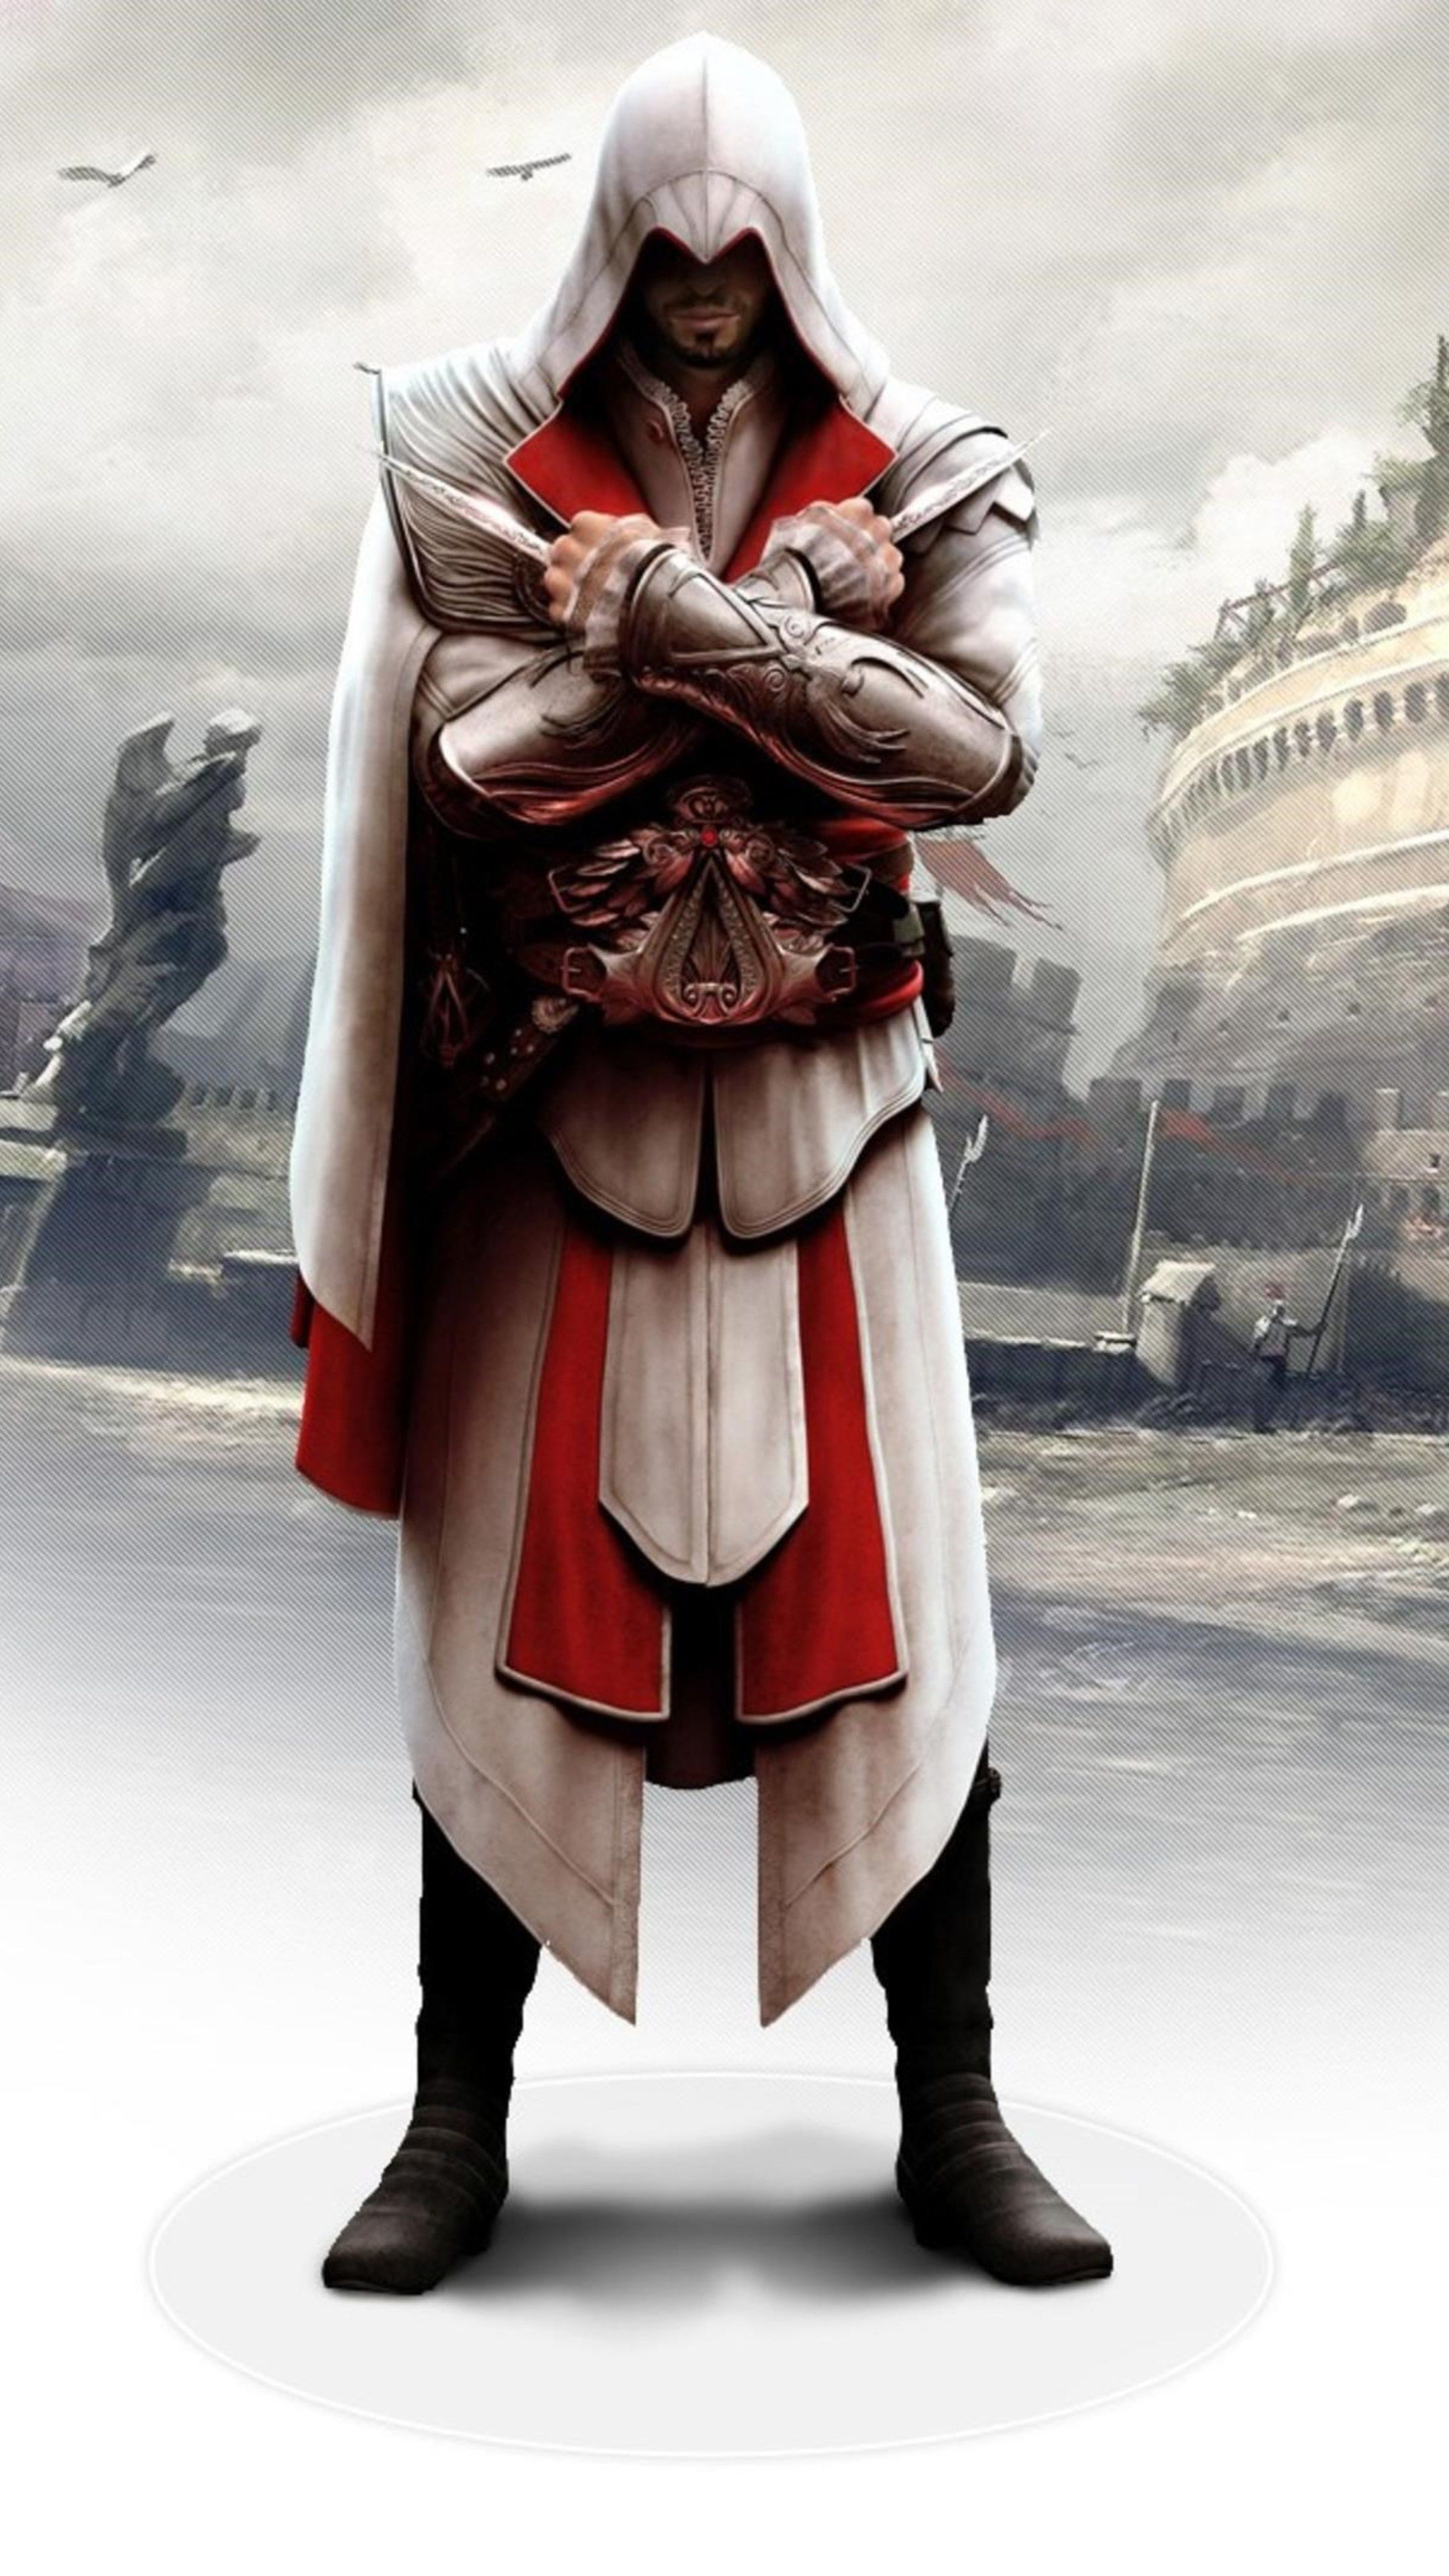 Misc Ezio In Assassins Creed Brotherhood Wallpapers Assassin S